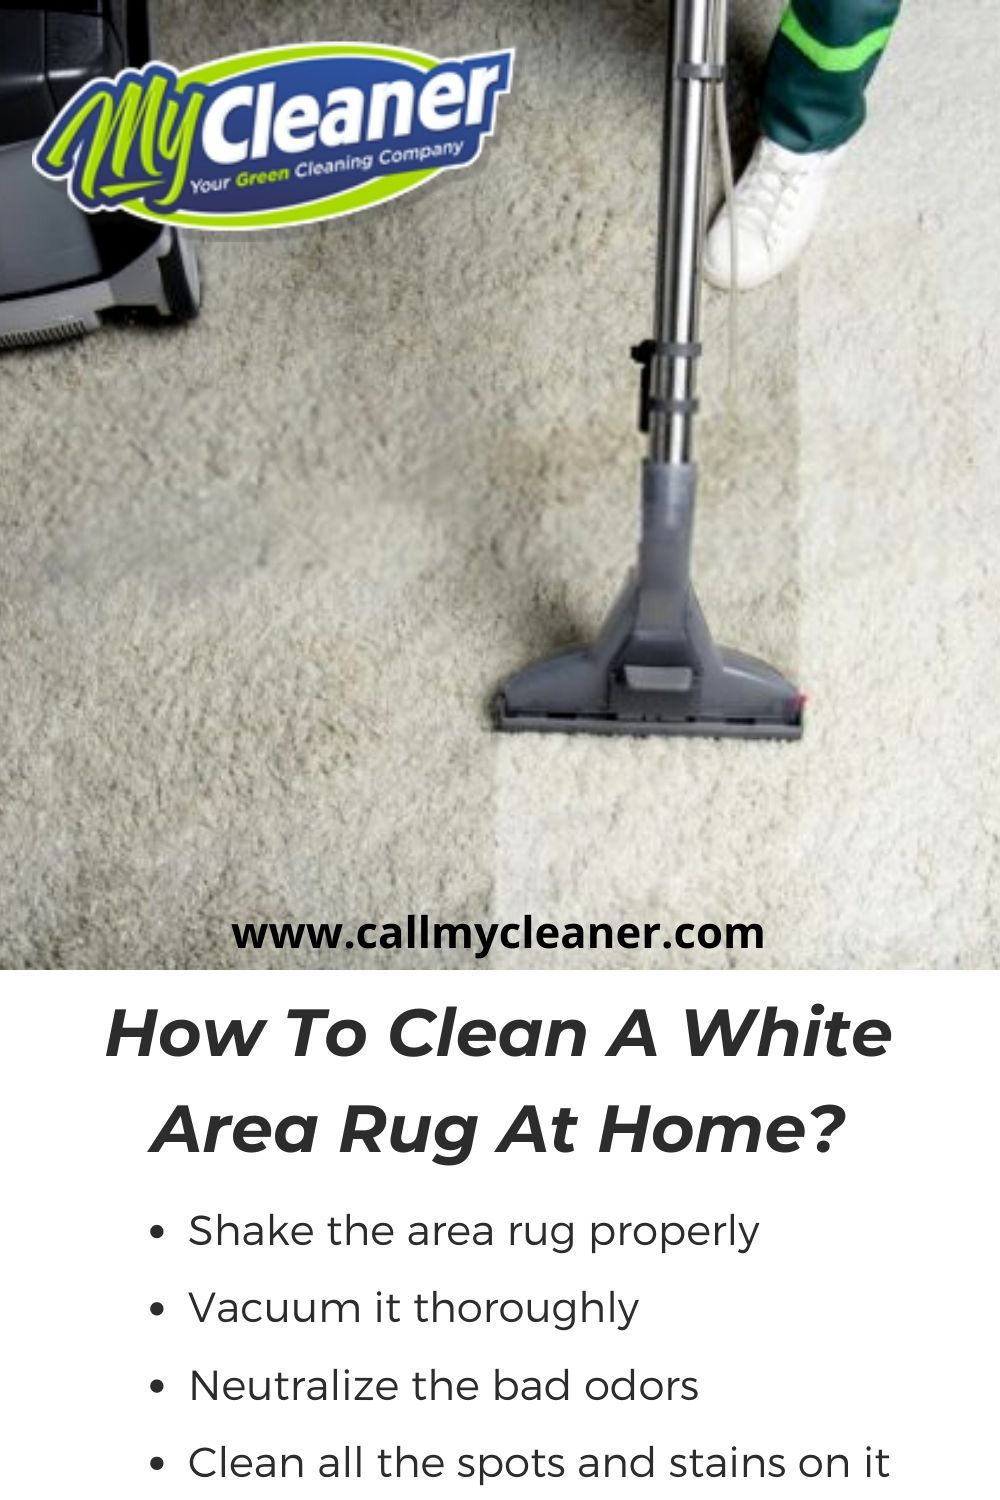 When you place a new white area rug in your drawing room or bedroom, it adds amazing beauty to that space. But, what if these white rugs start accumulating dirt and contaminated particles in it? Therefore, learn here the 4 easy steps to clean a white area rug at home.  #rug #rugcleaning #arearugcleaning #arearugcleaners #professionalarearugcleaningnearme #arearugcleaninginmyarea #localarearugcleaningservice #arearugclaningincapecoral